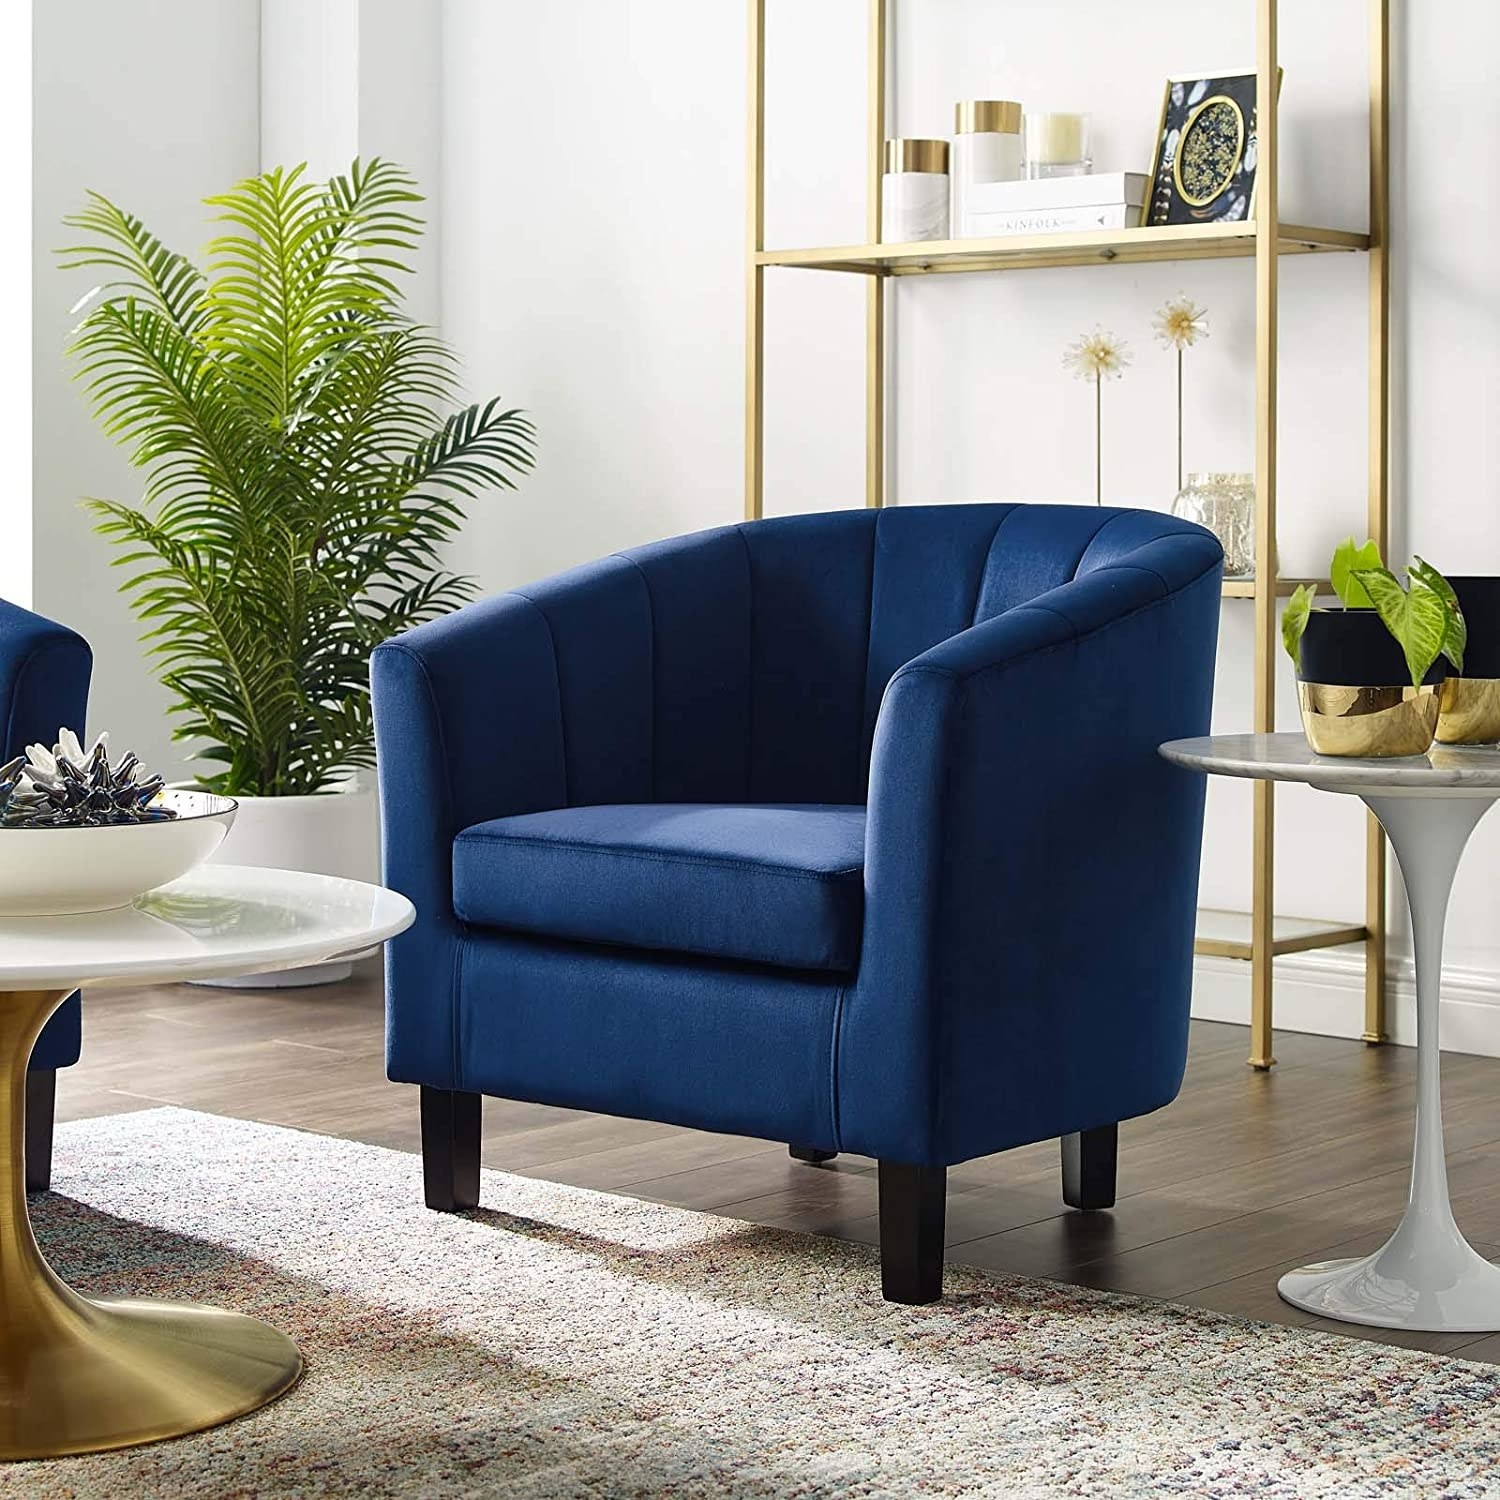 the navy modway tufted velvet armchair in a white and gold living space